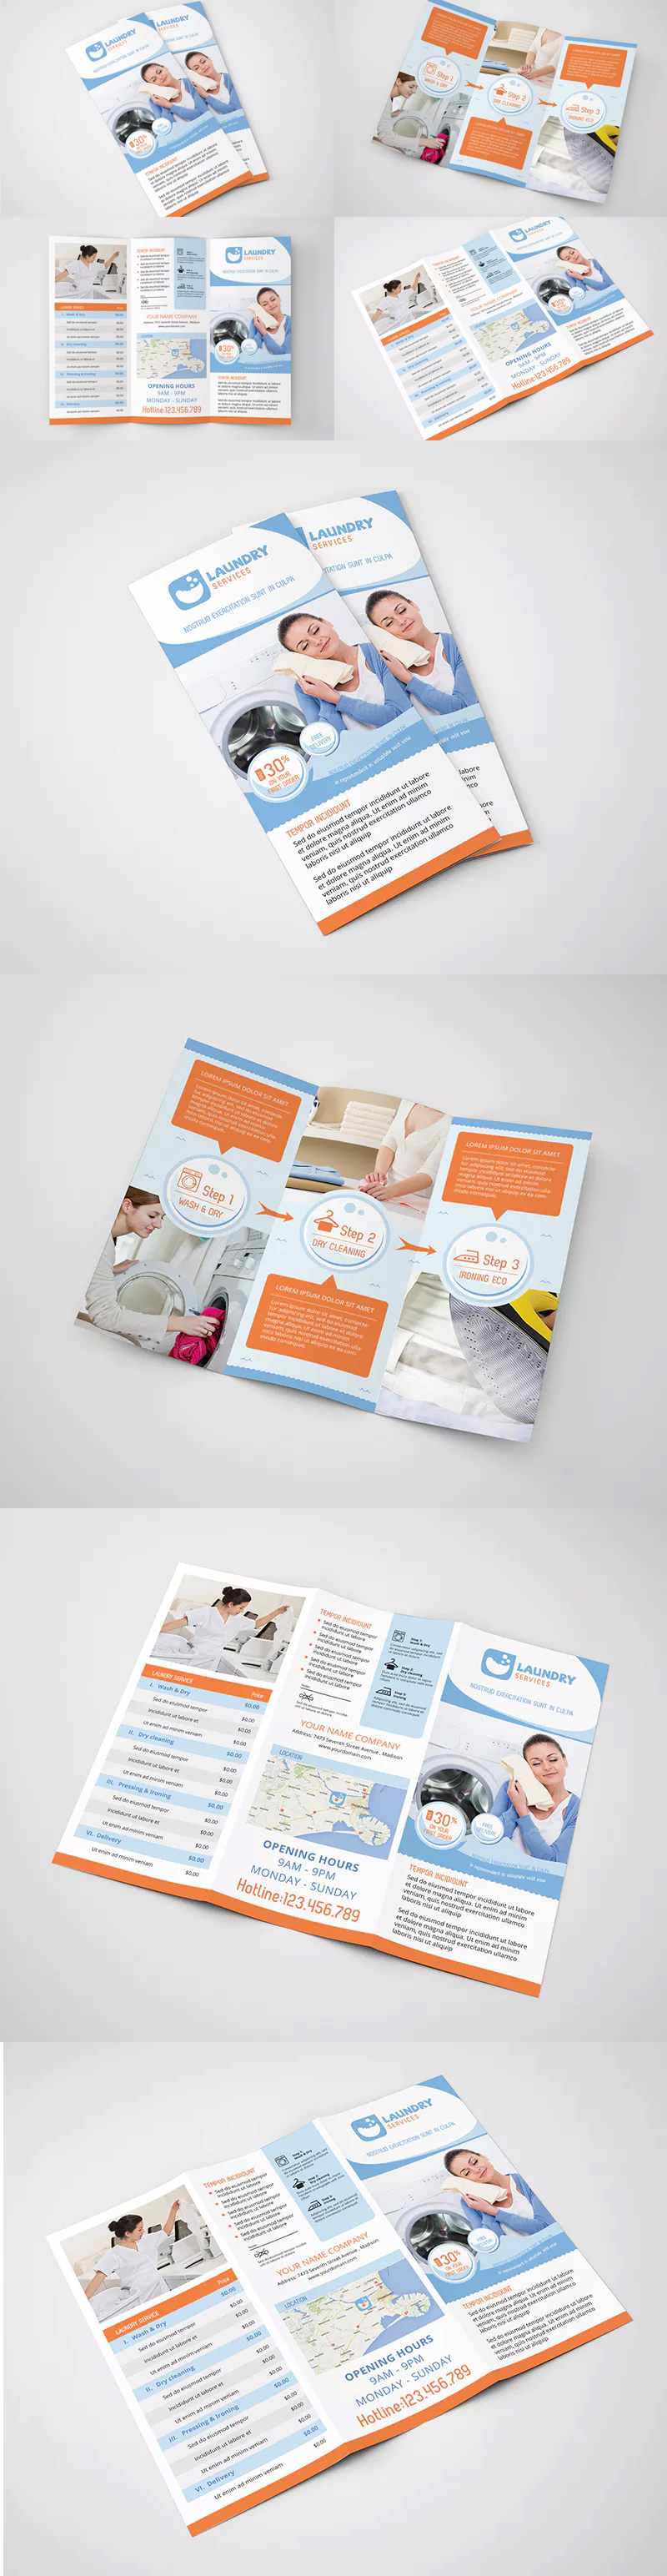 Laundry Services Trifold Brochure Template PSD | Brochure Templates ...